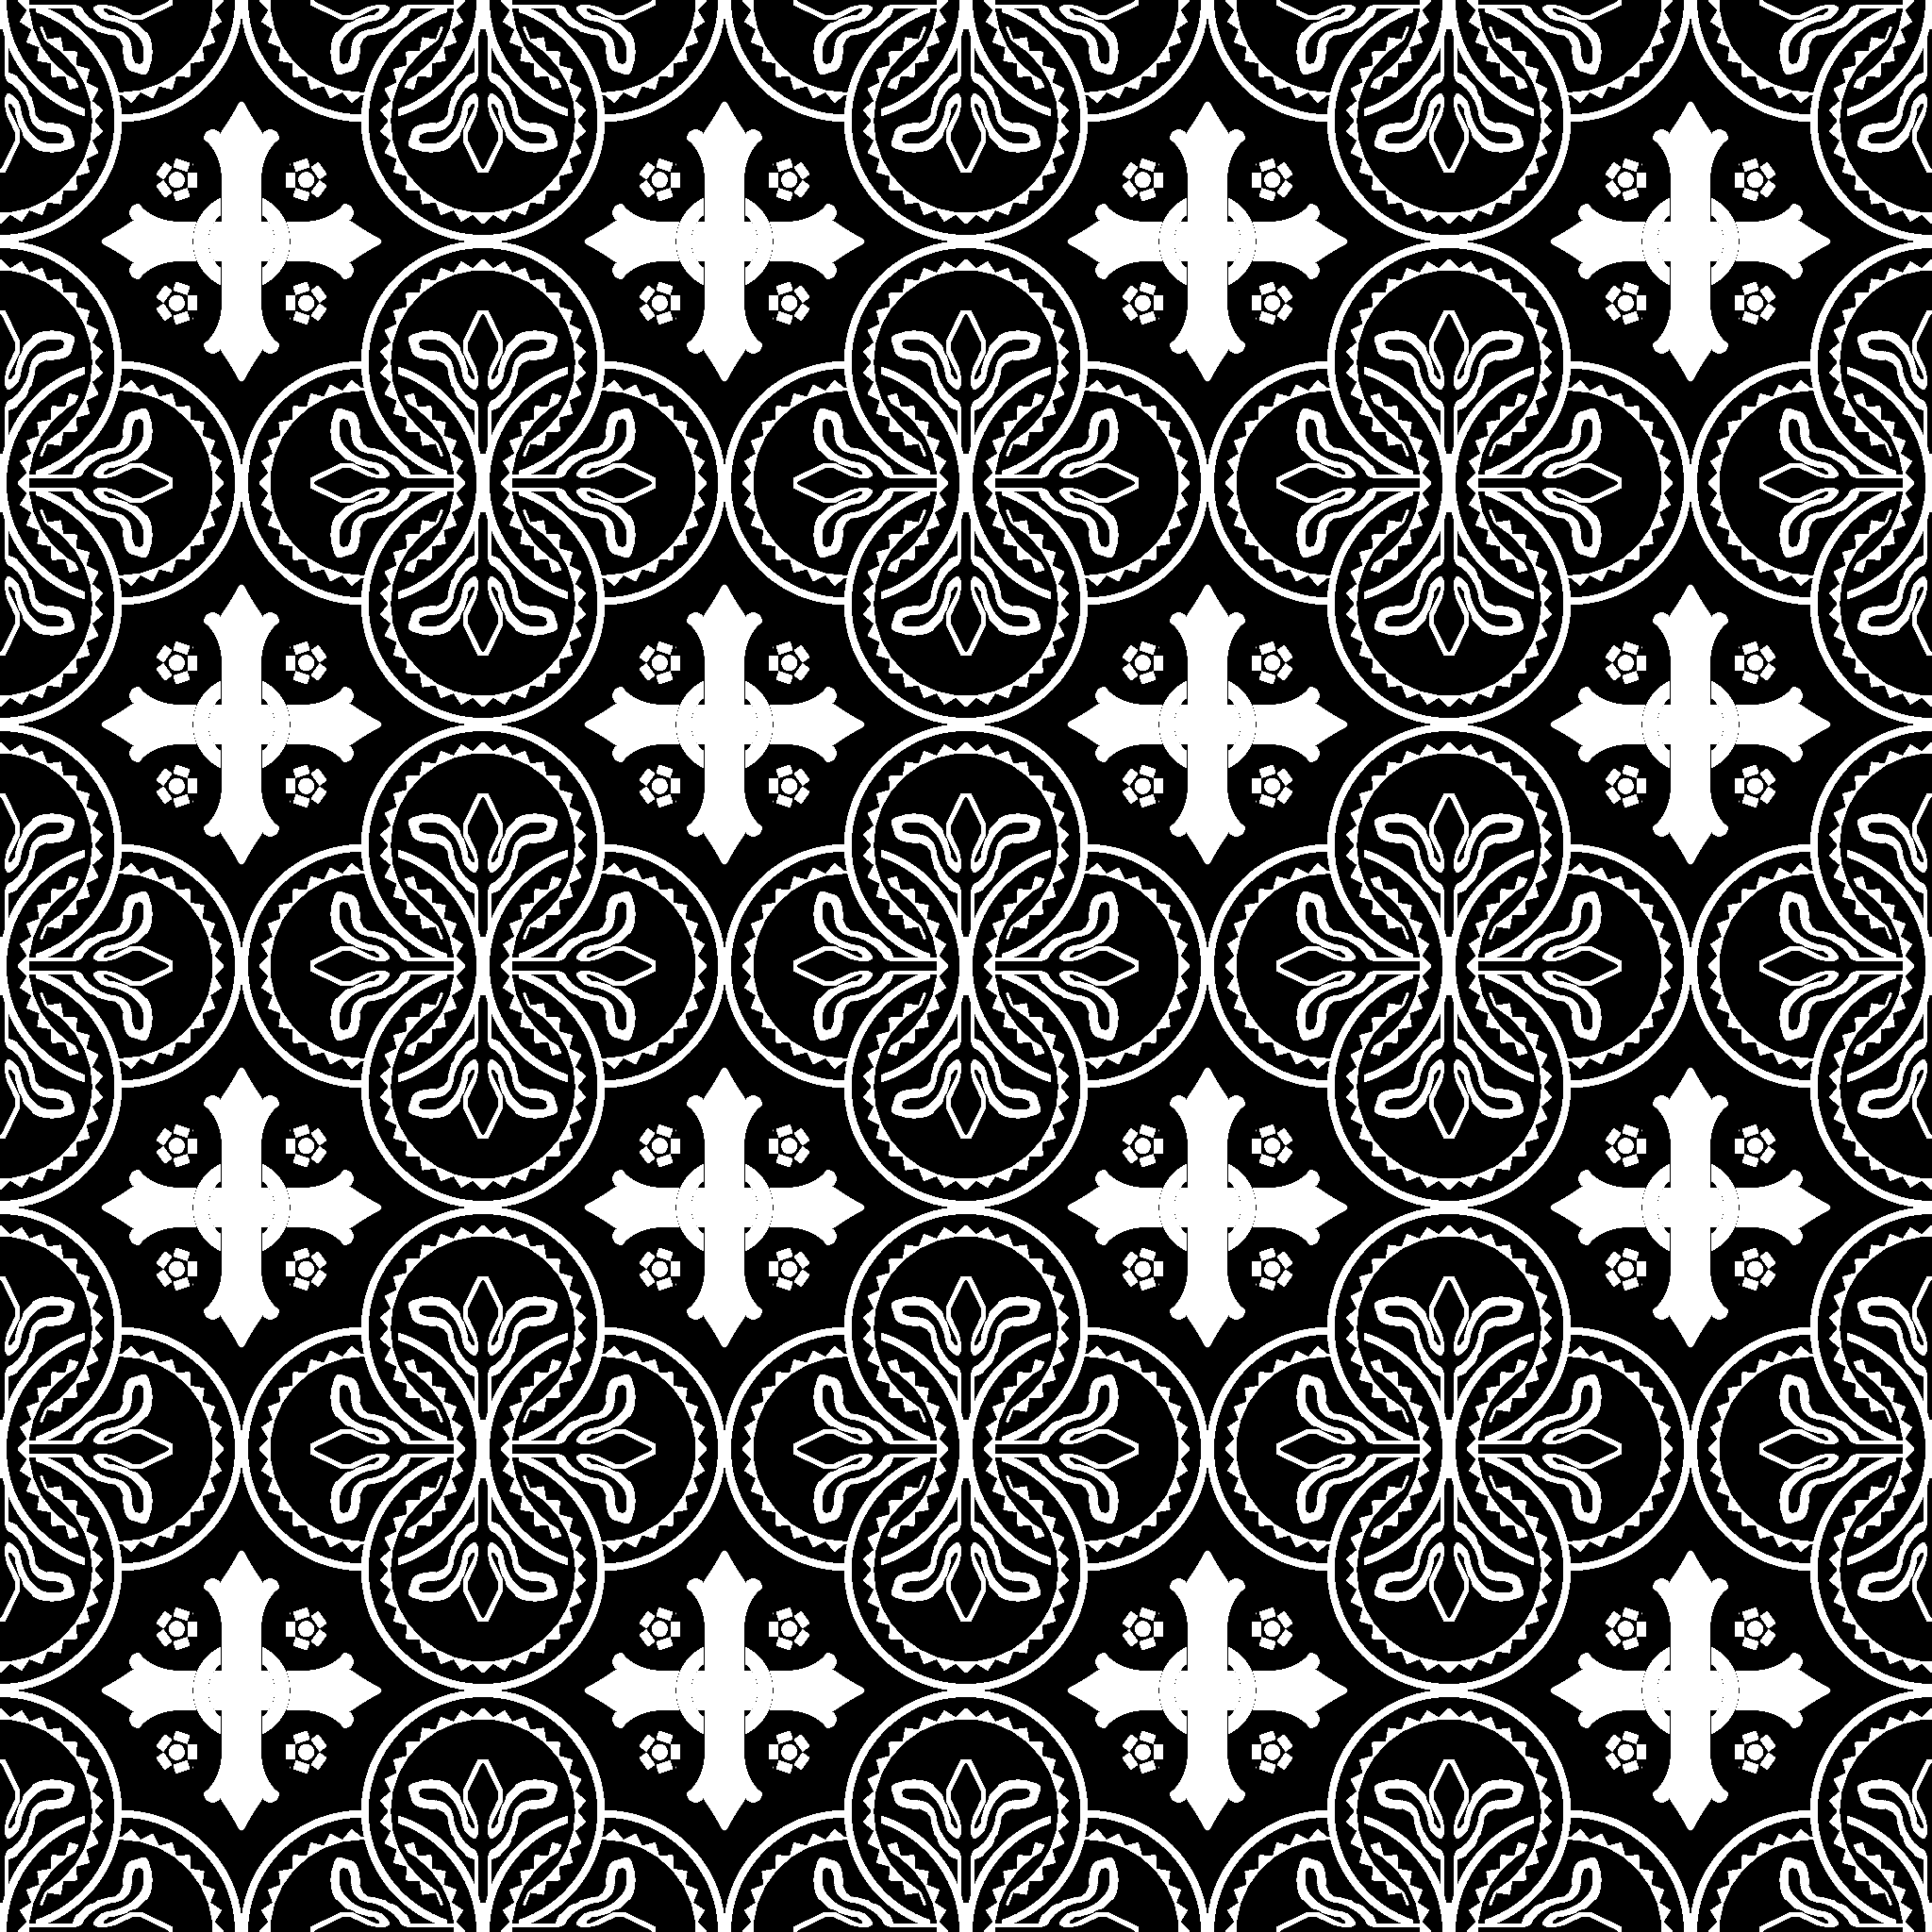 Floral_Pattern_3.PNG.png